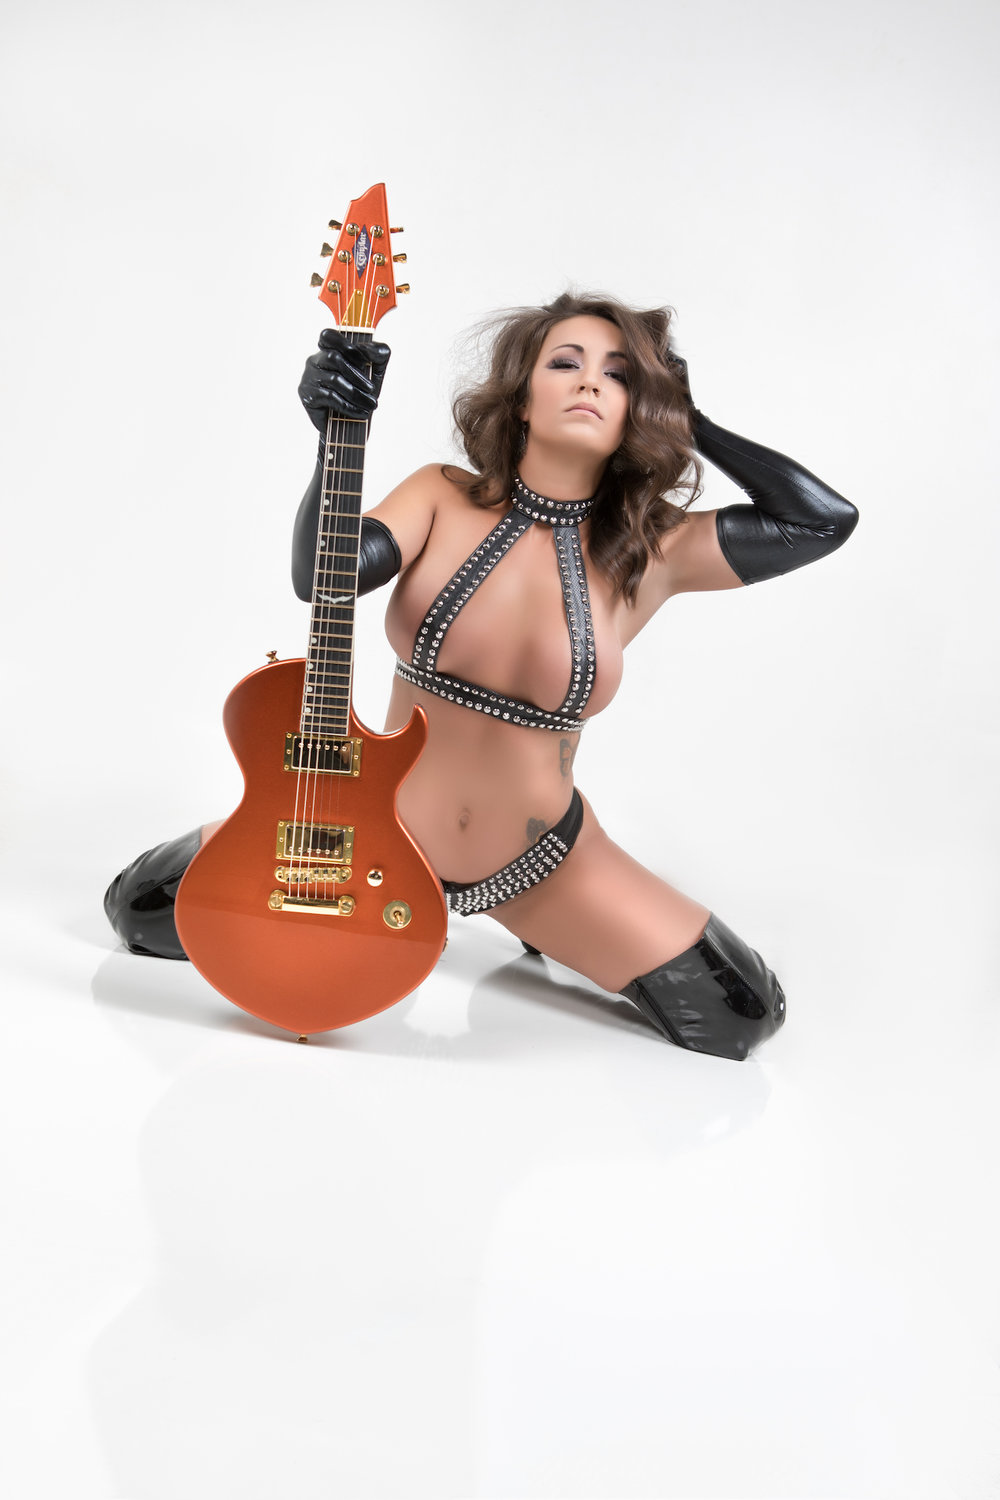 Guitar1017Courtney - IMGL9041-Edit.jpg